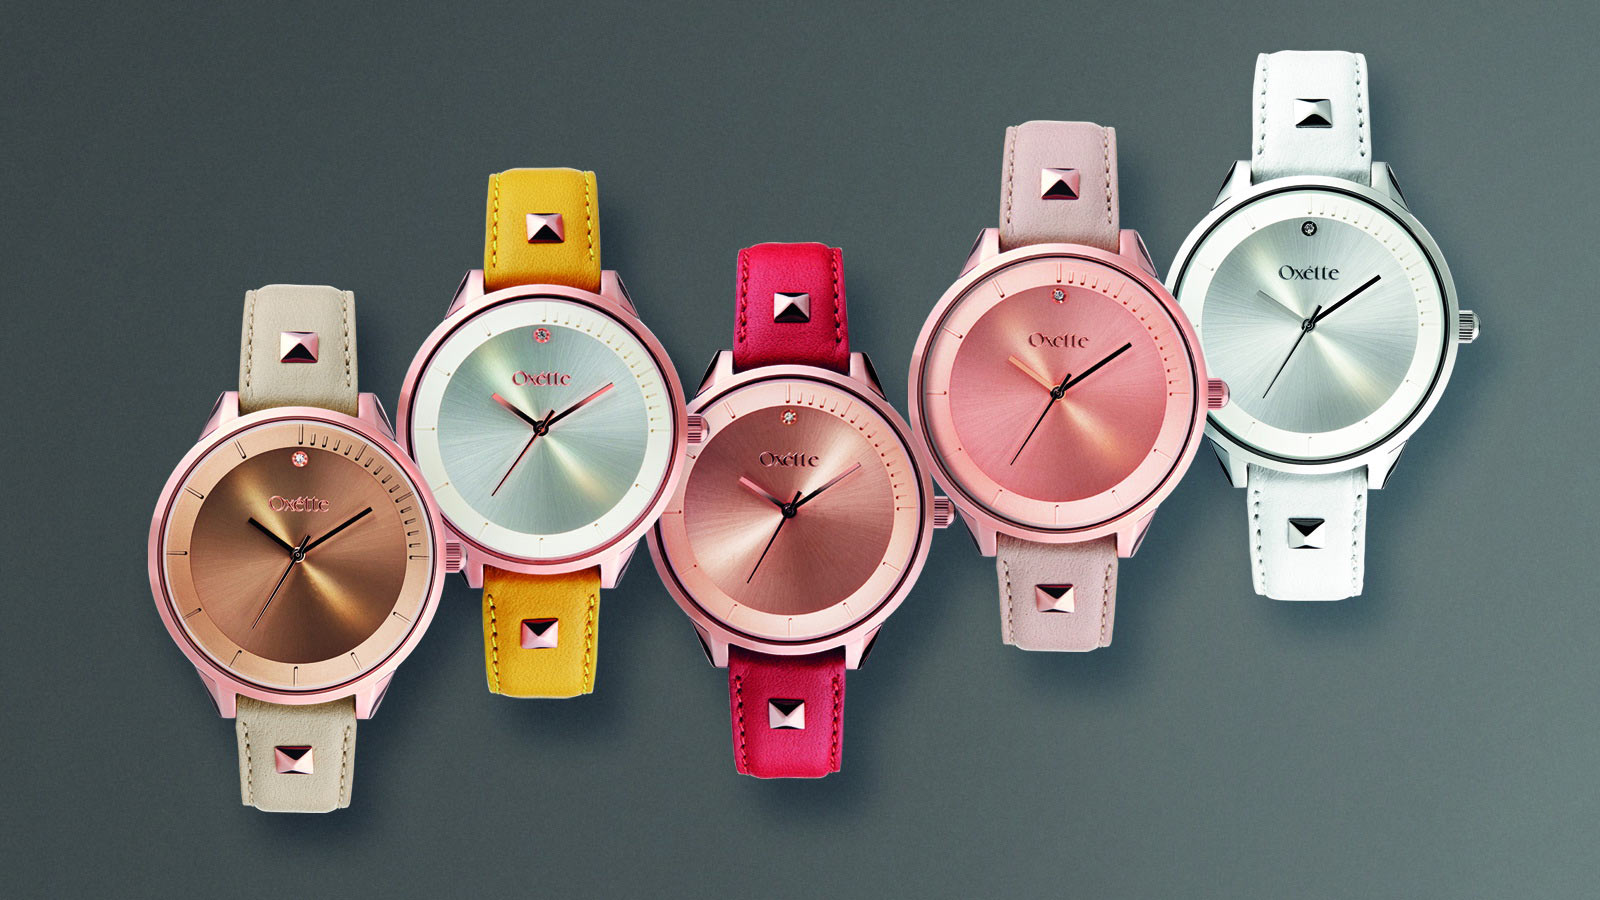 Solaris Watches - Oxette